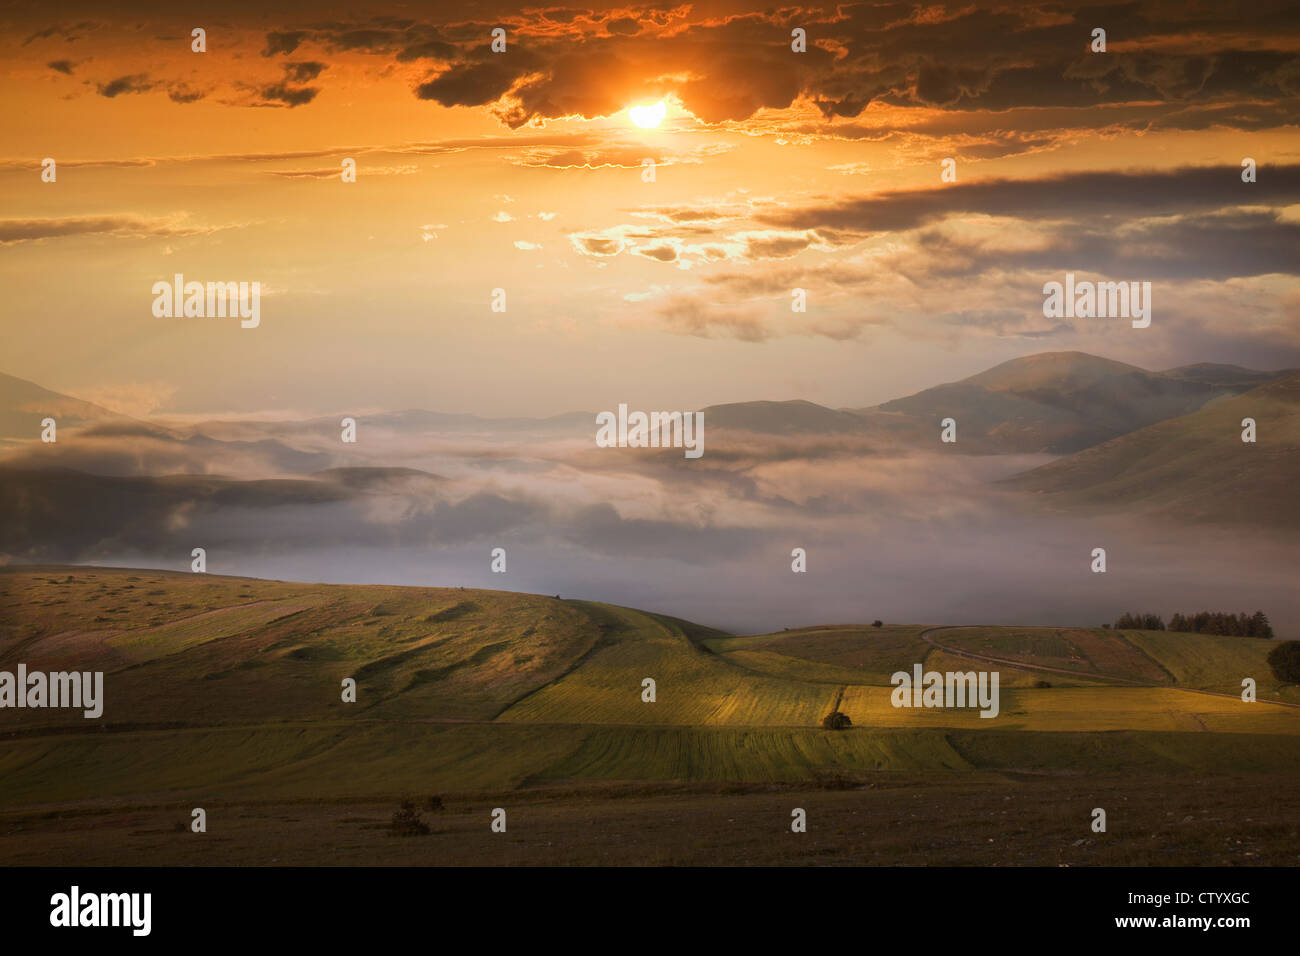 Sunset in dramatic sky over fields - Stock Image